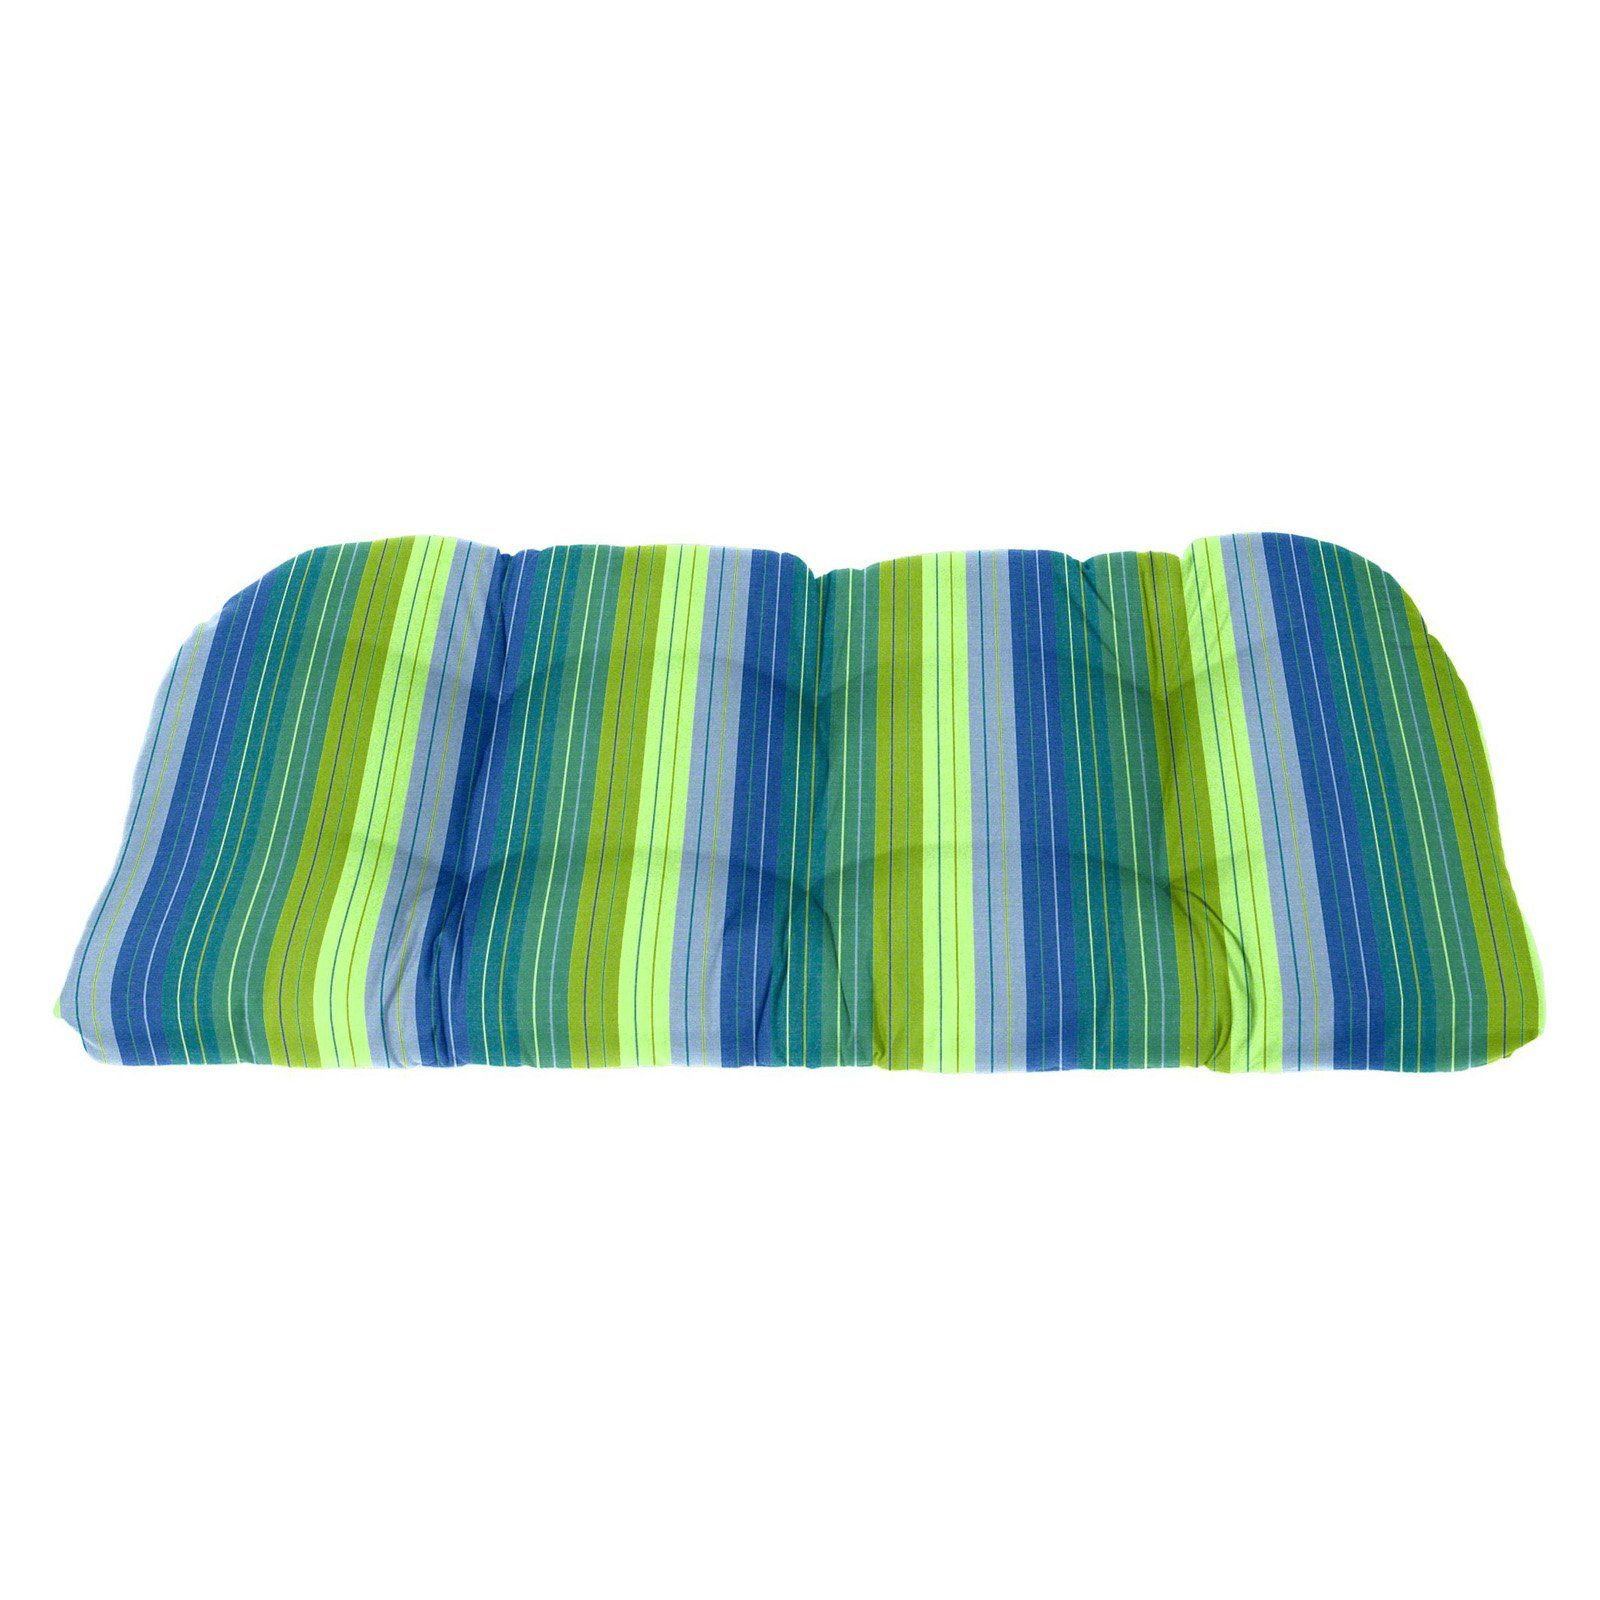 Cushion Source 41 X 19 In Striped Sunbrella Rounded Back Bench